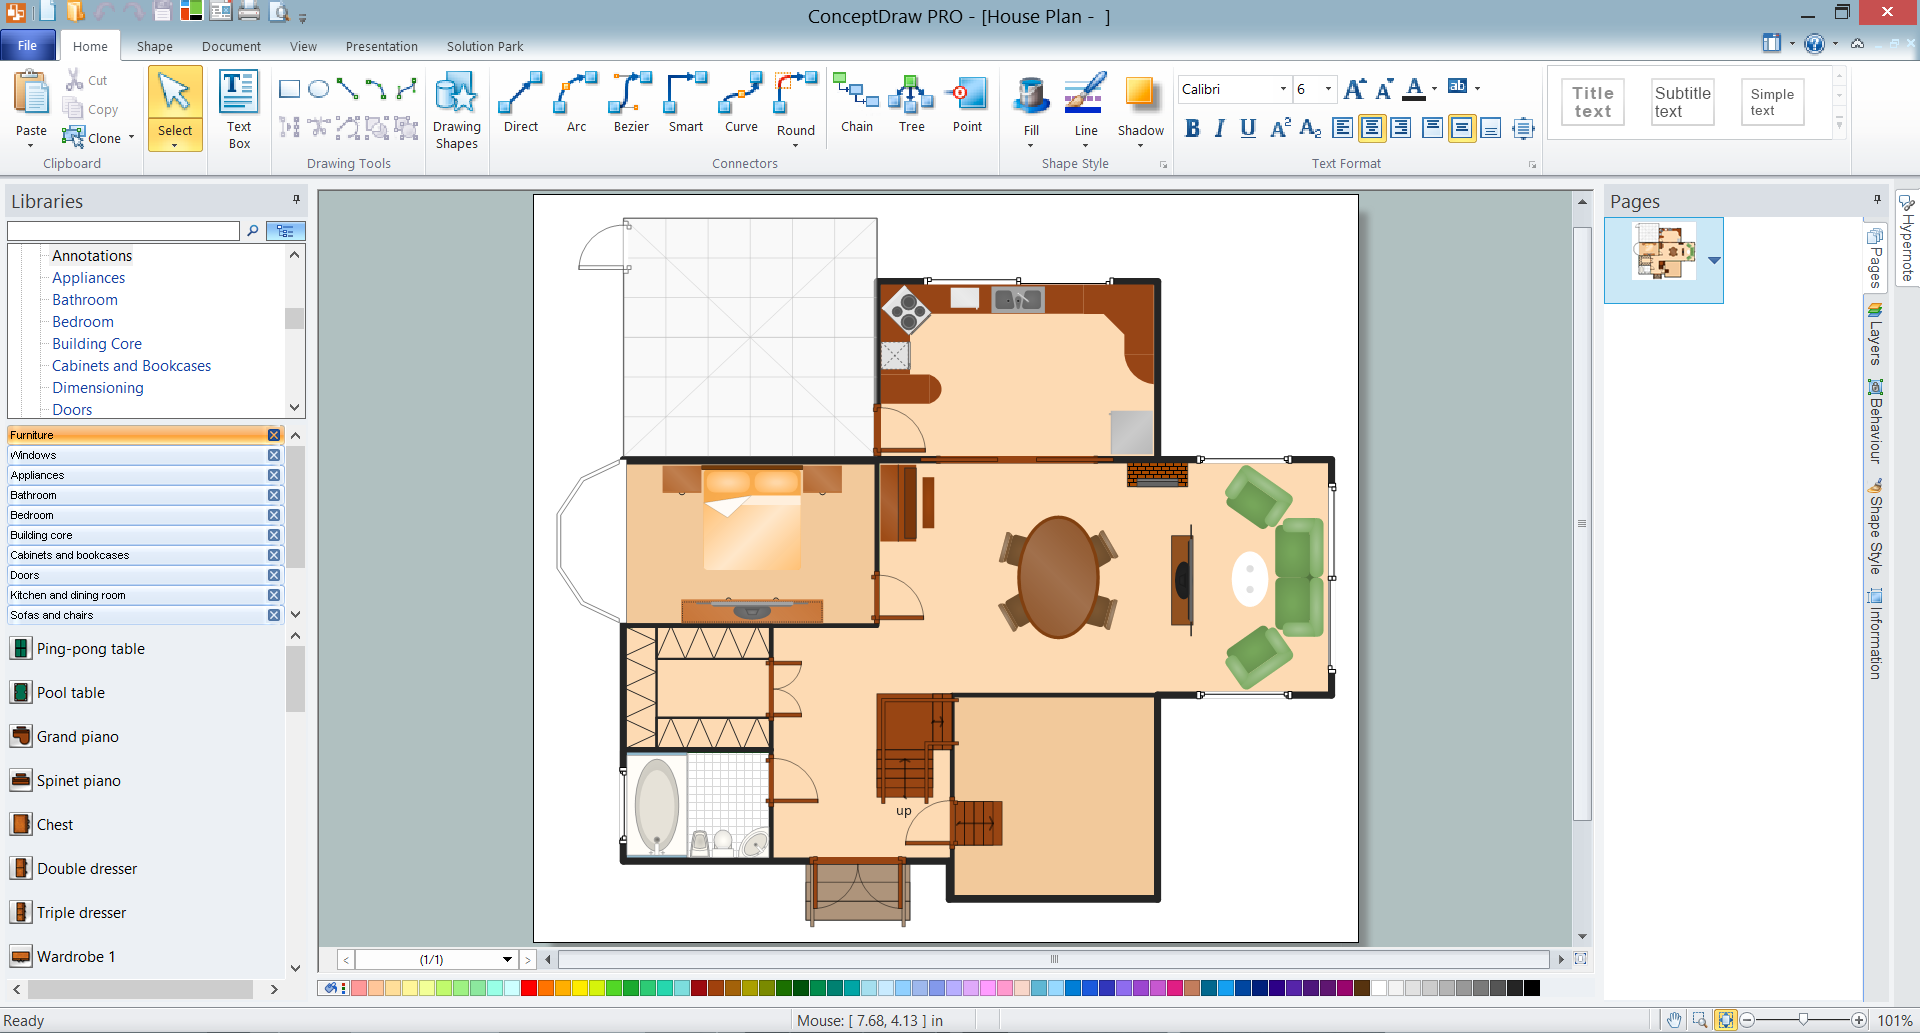 Home Plan in ConceptDraw DIAGRAM for PC